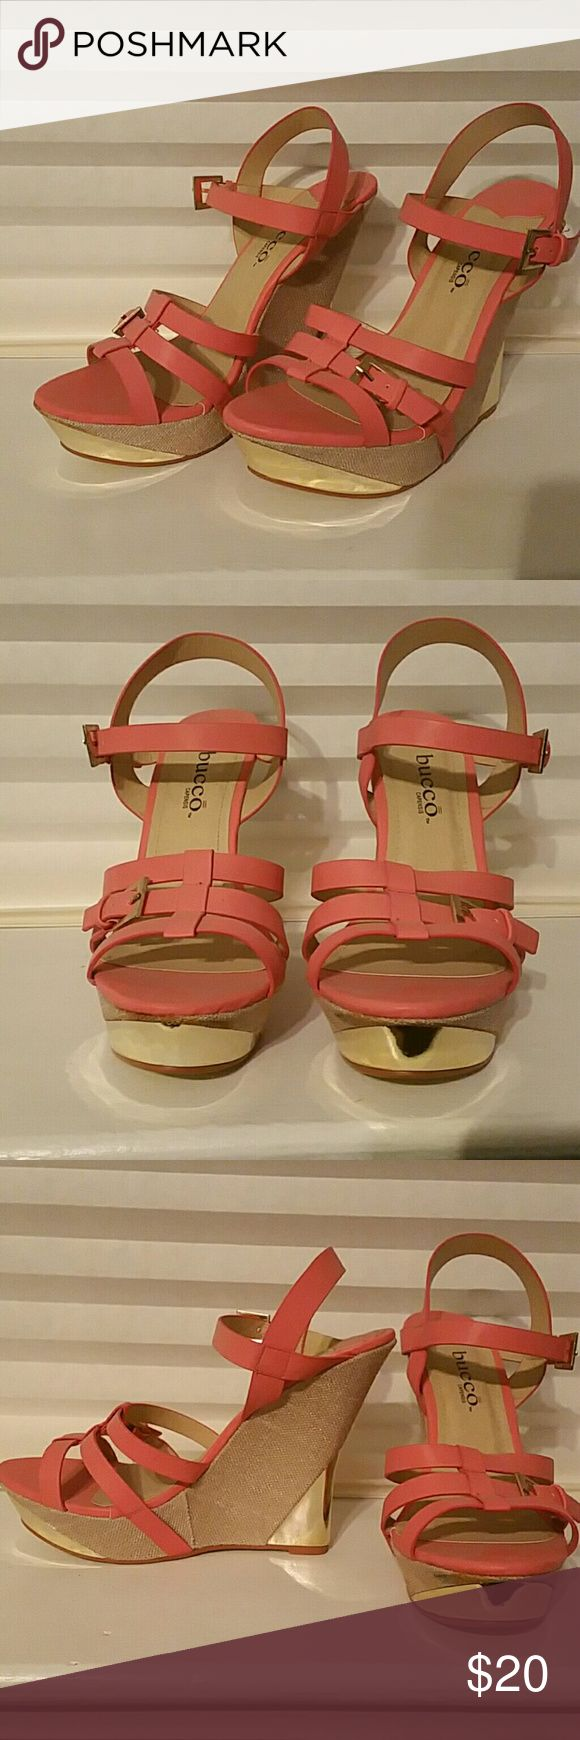 Coral wedges Coral wedges, gold accents on heels and front platform Shoes Wedges